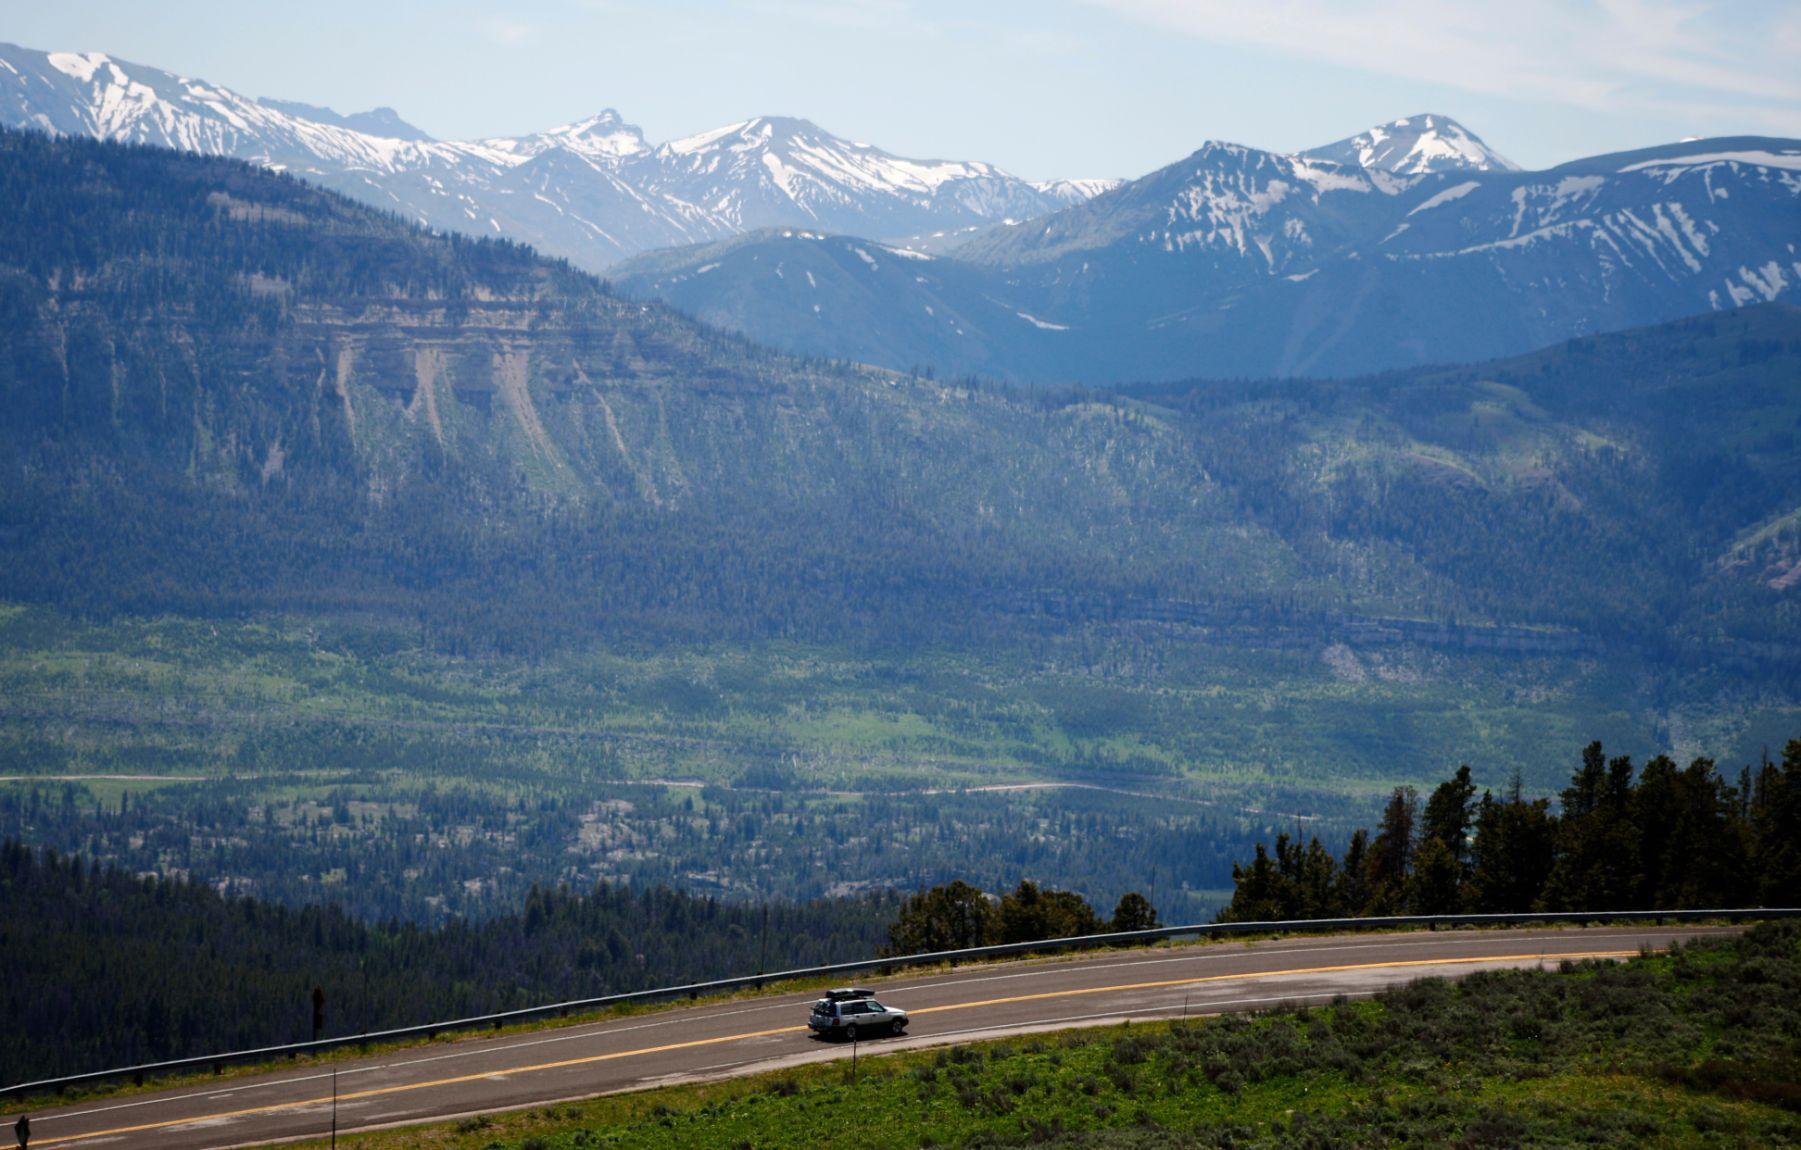 75 things to do in Montana